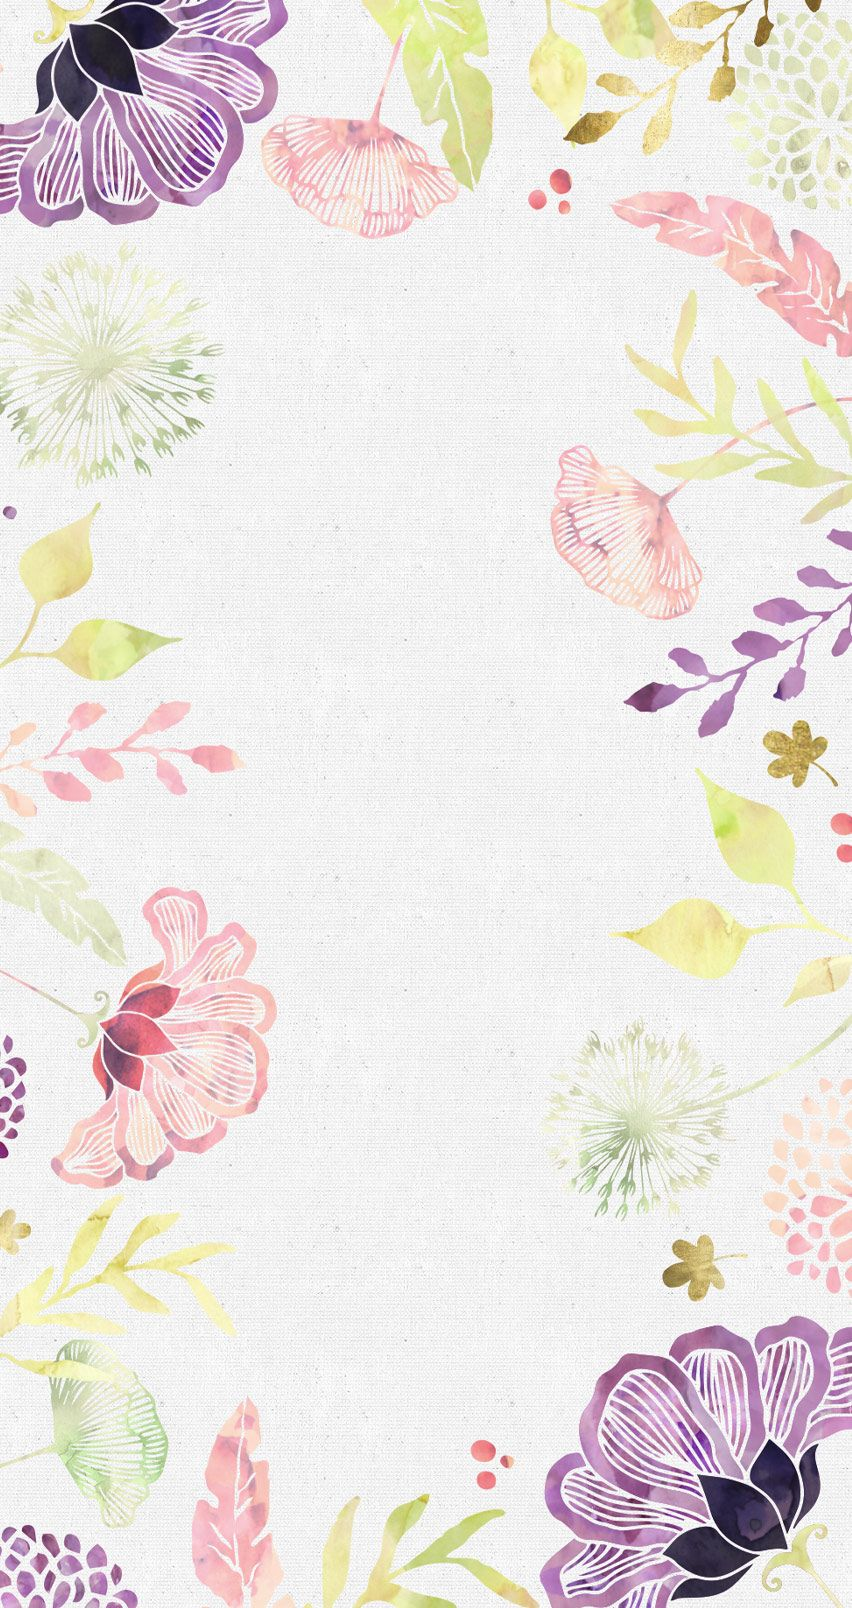 Free Floral Desktop Wallpaper I Choose Happiness Floral